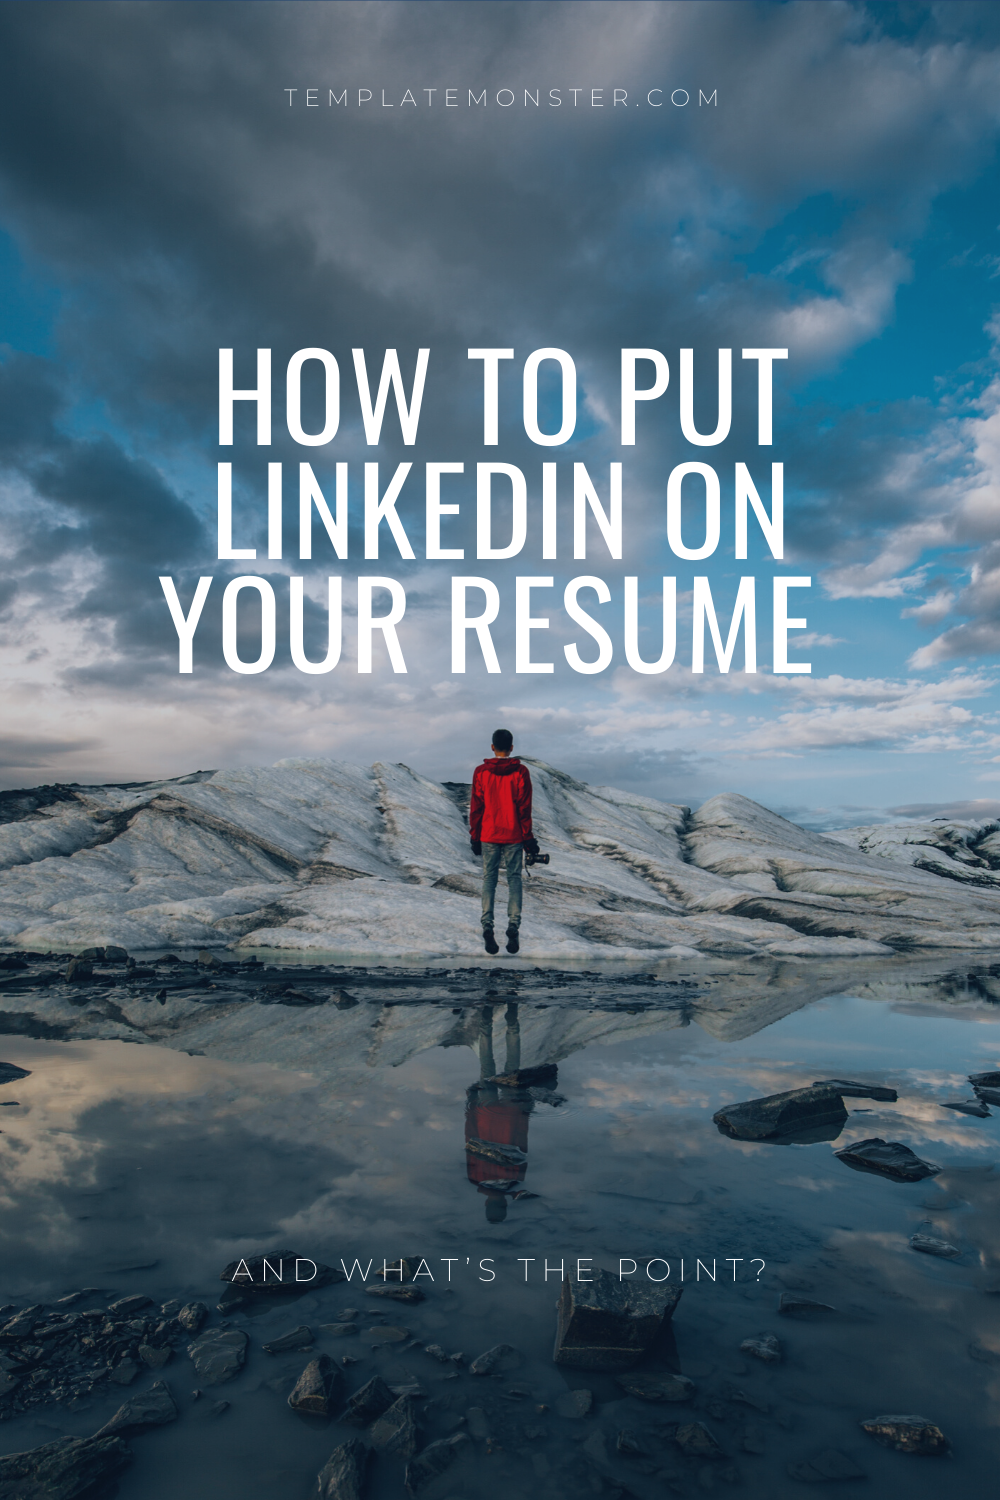 How to Put LinkedIn on Your Resume and What's the Point